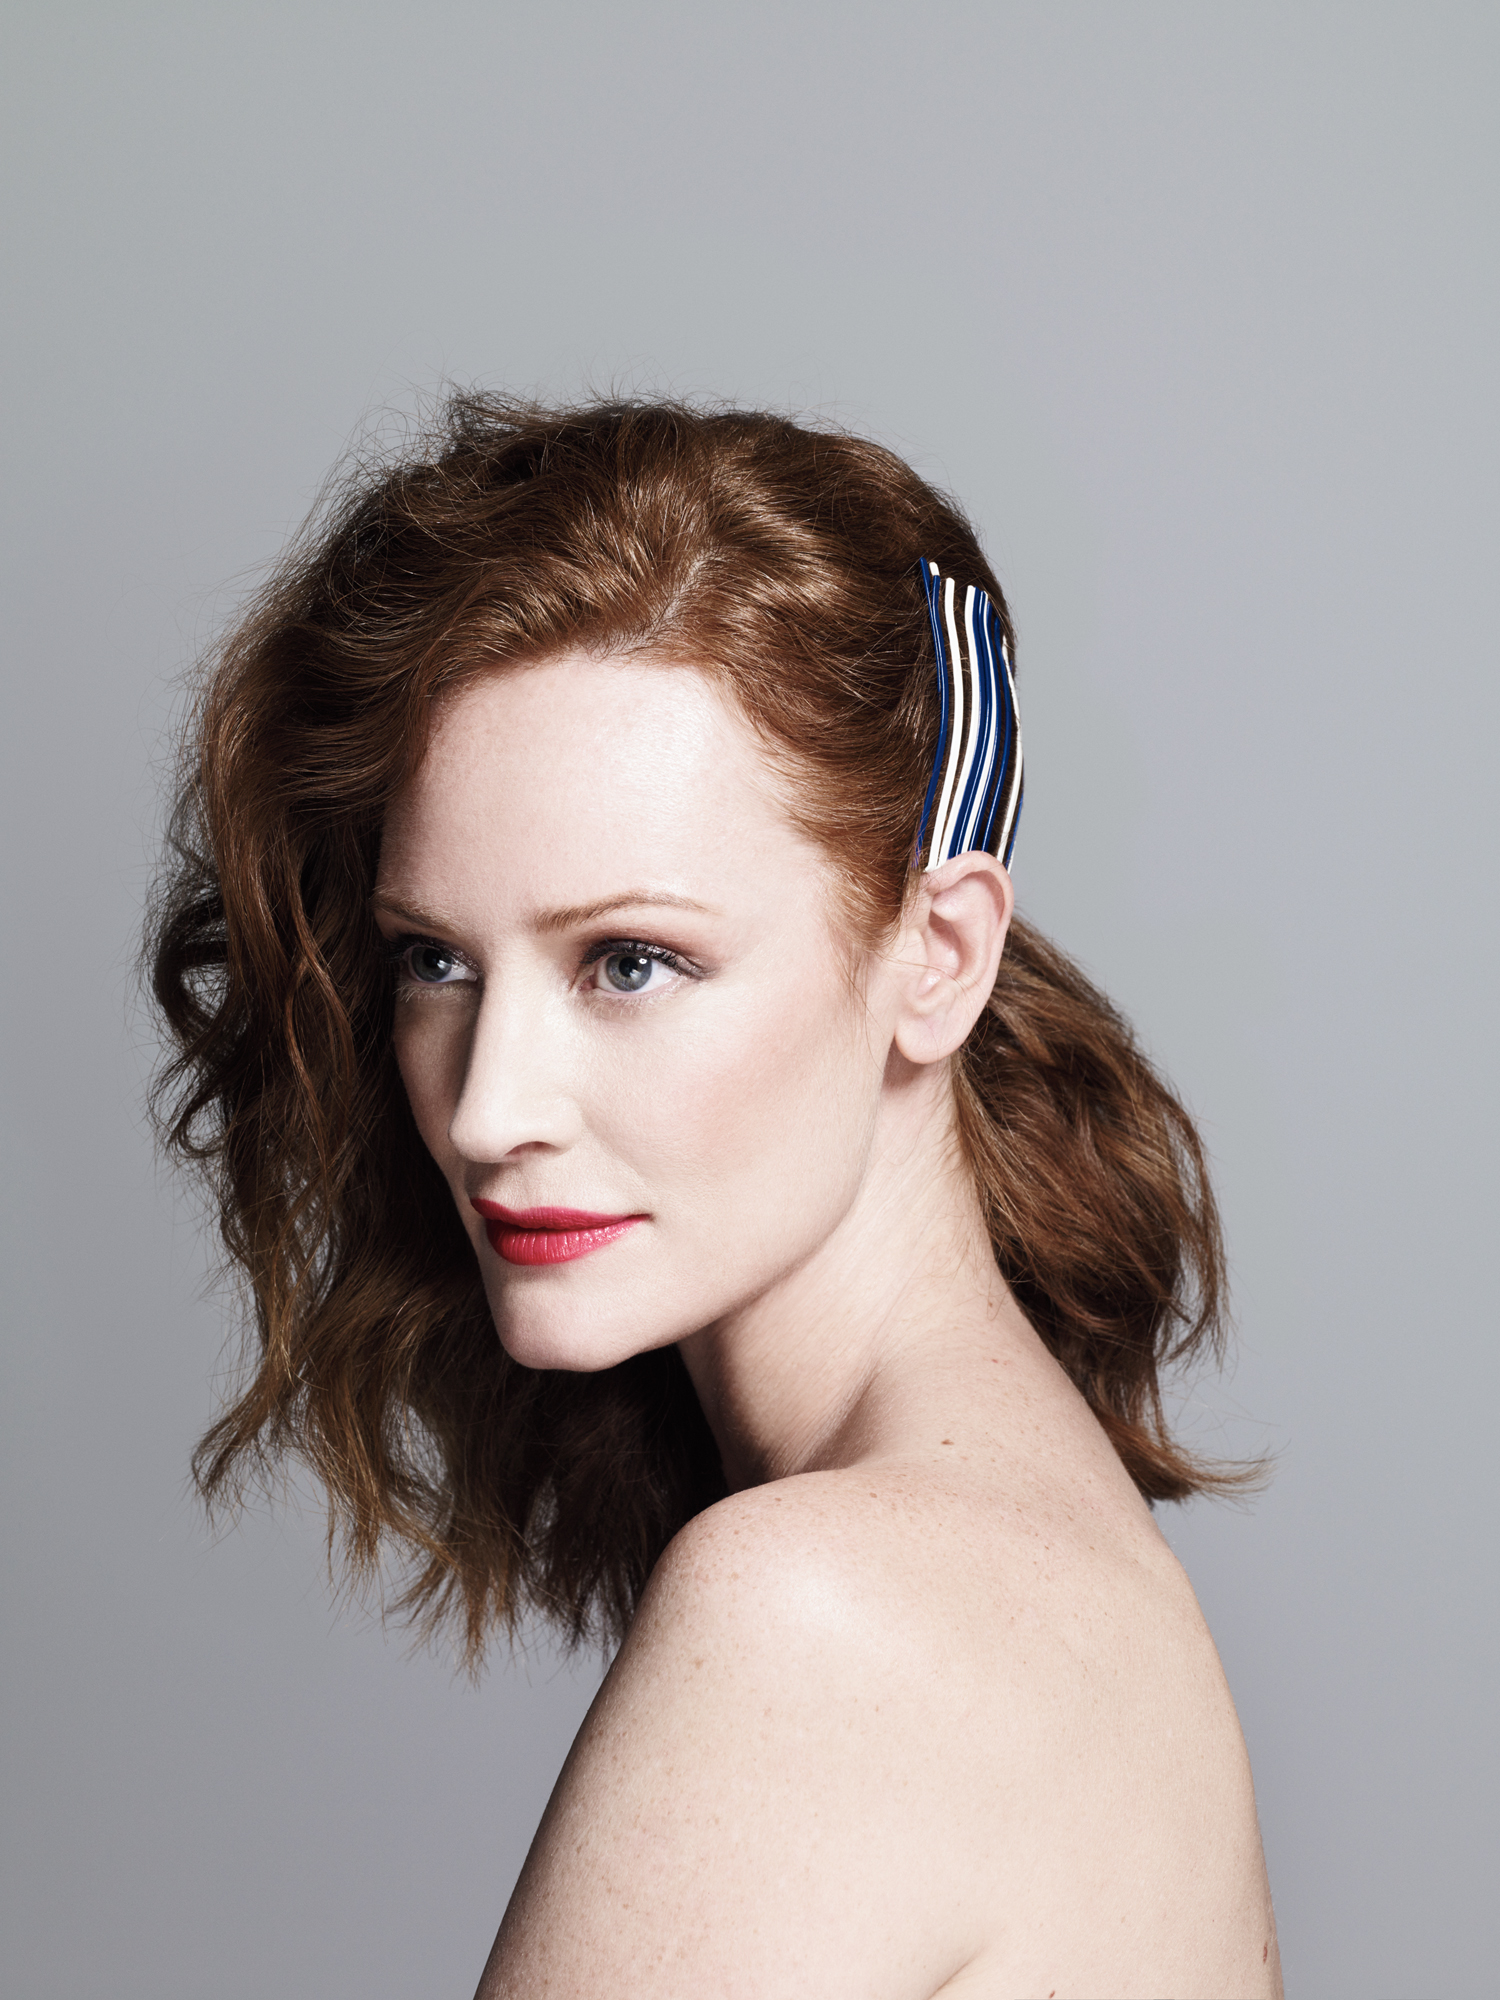 Model with hair half-up, half-down